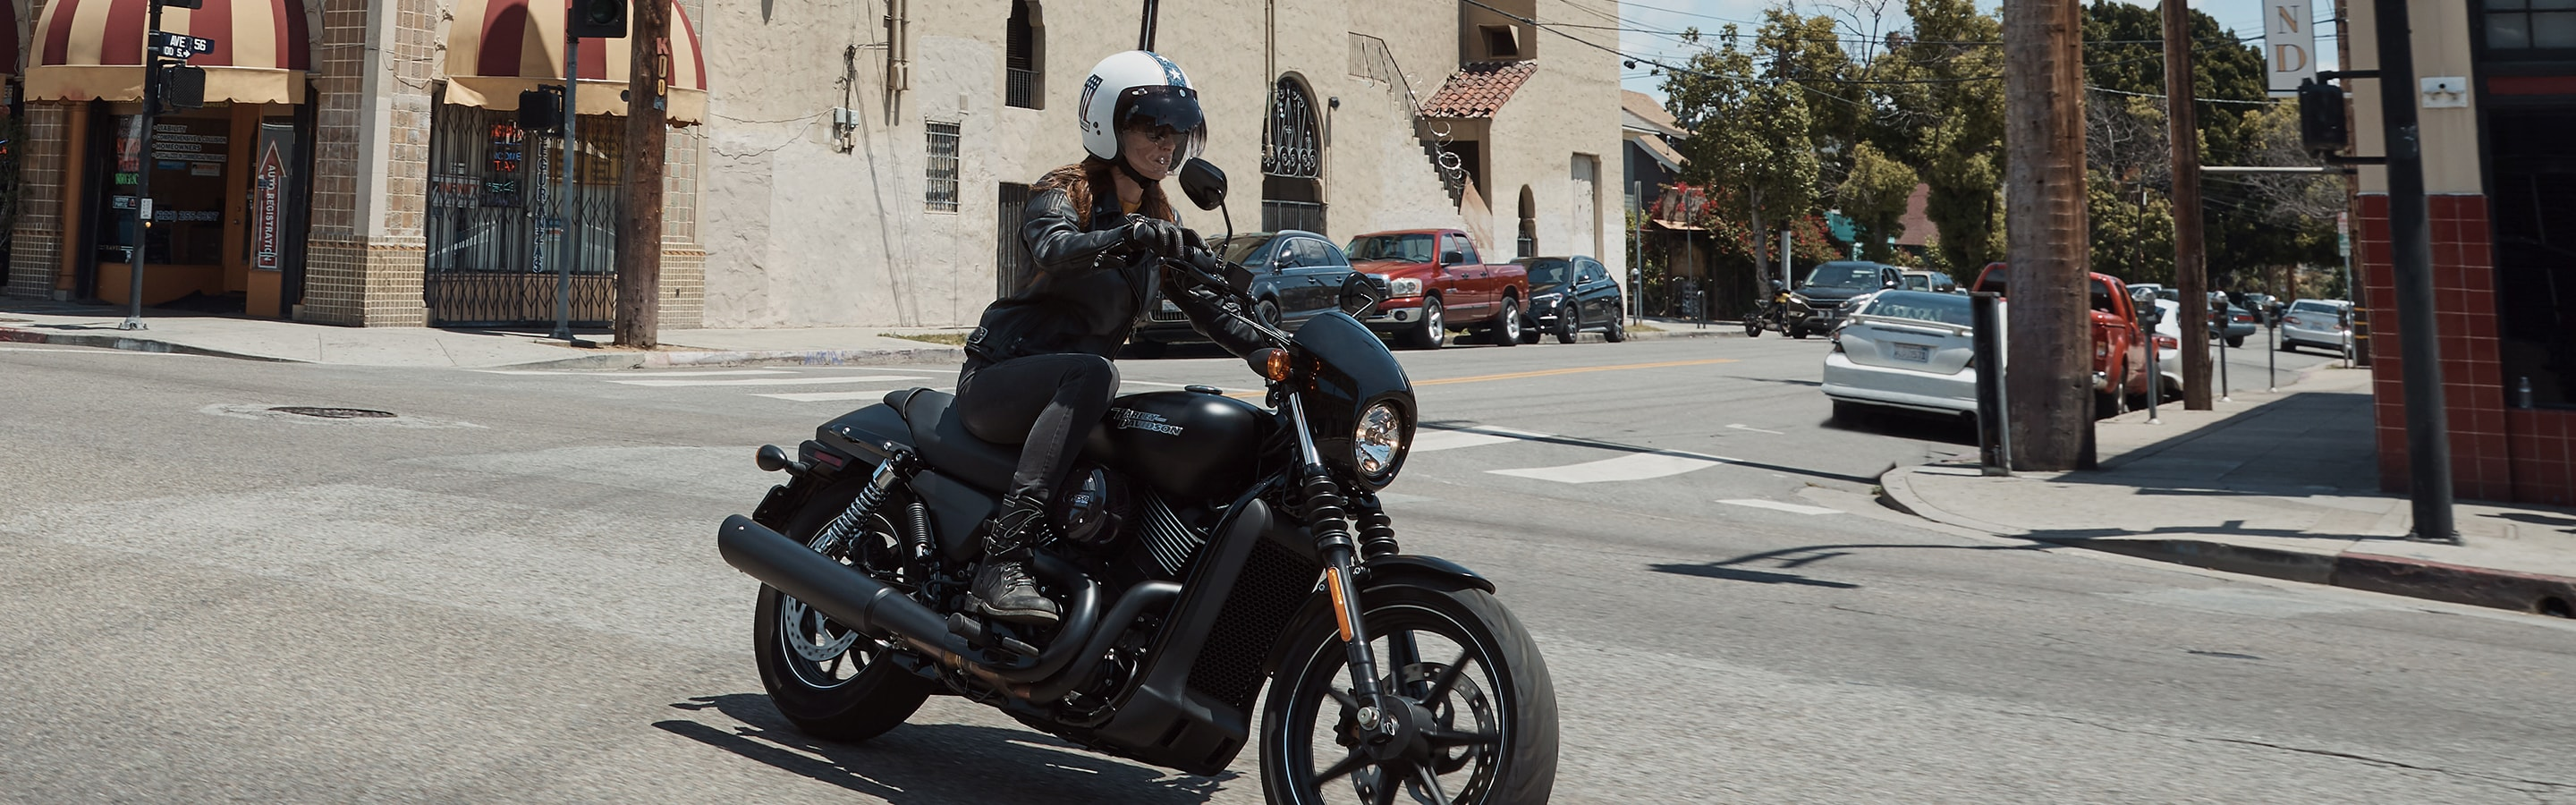 A Woman riding a 2020 H-D Street Motorcycle